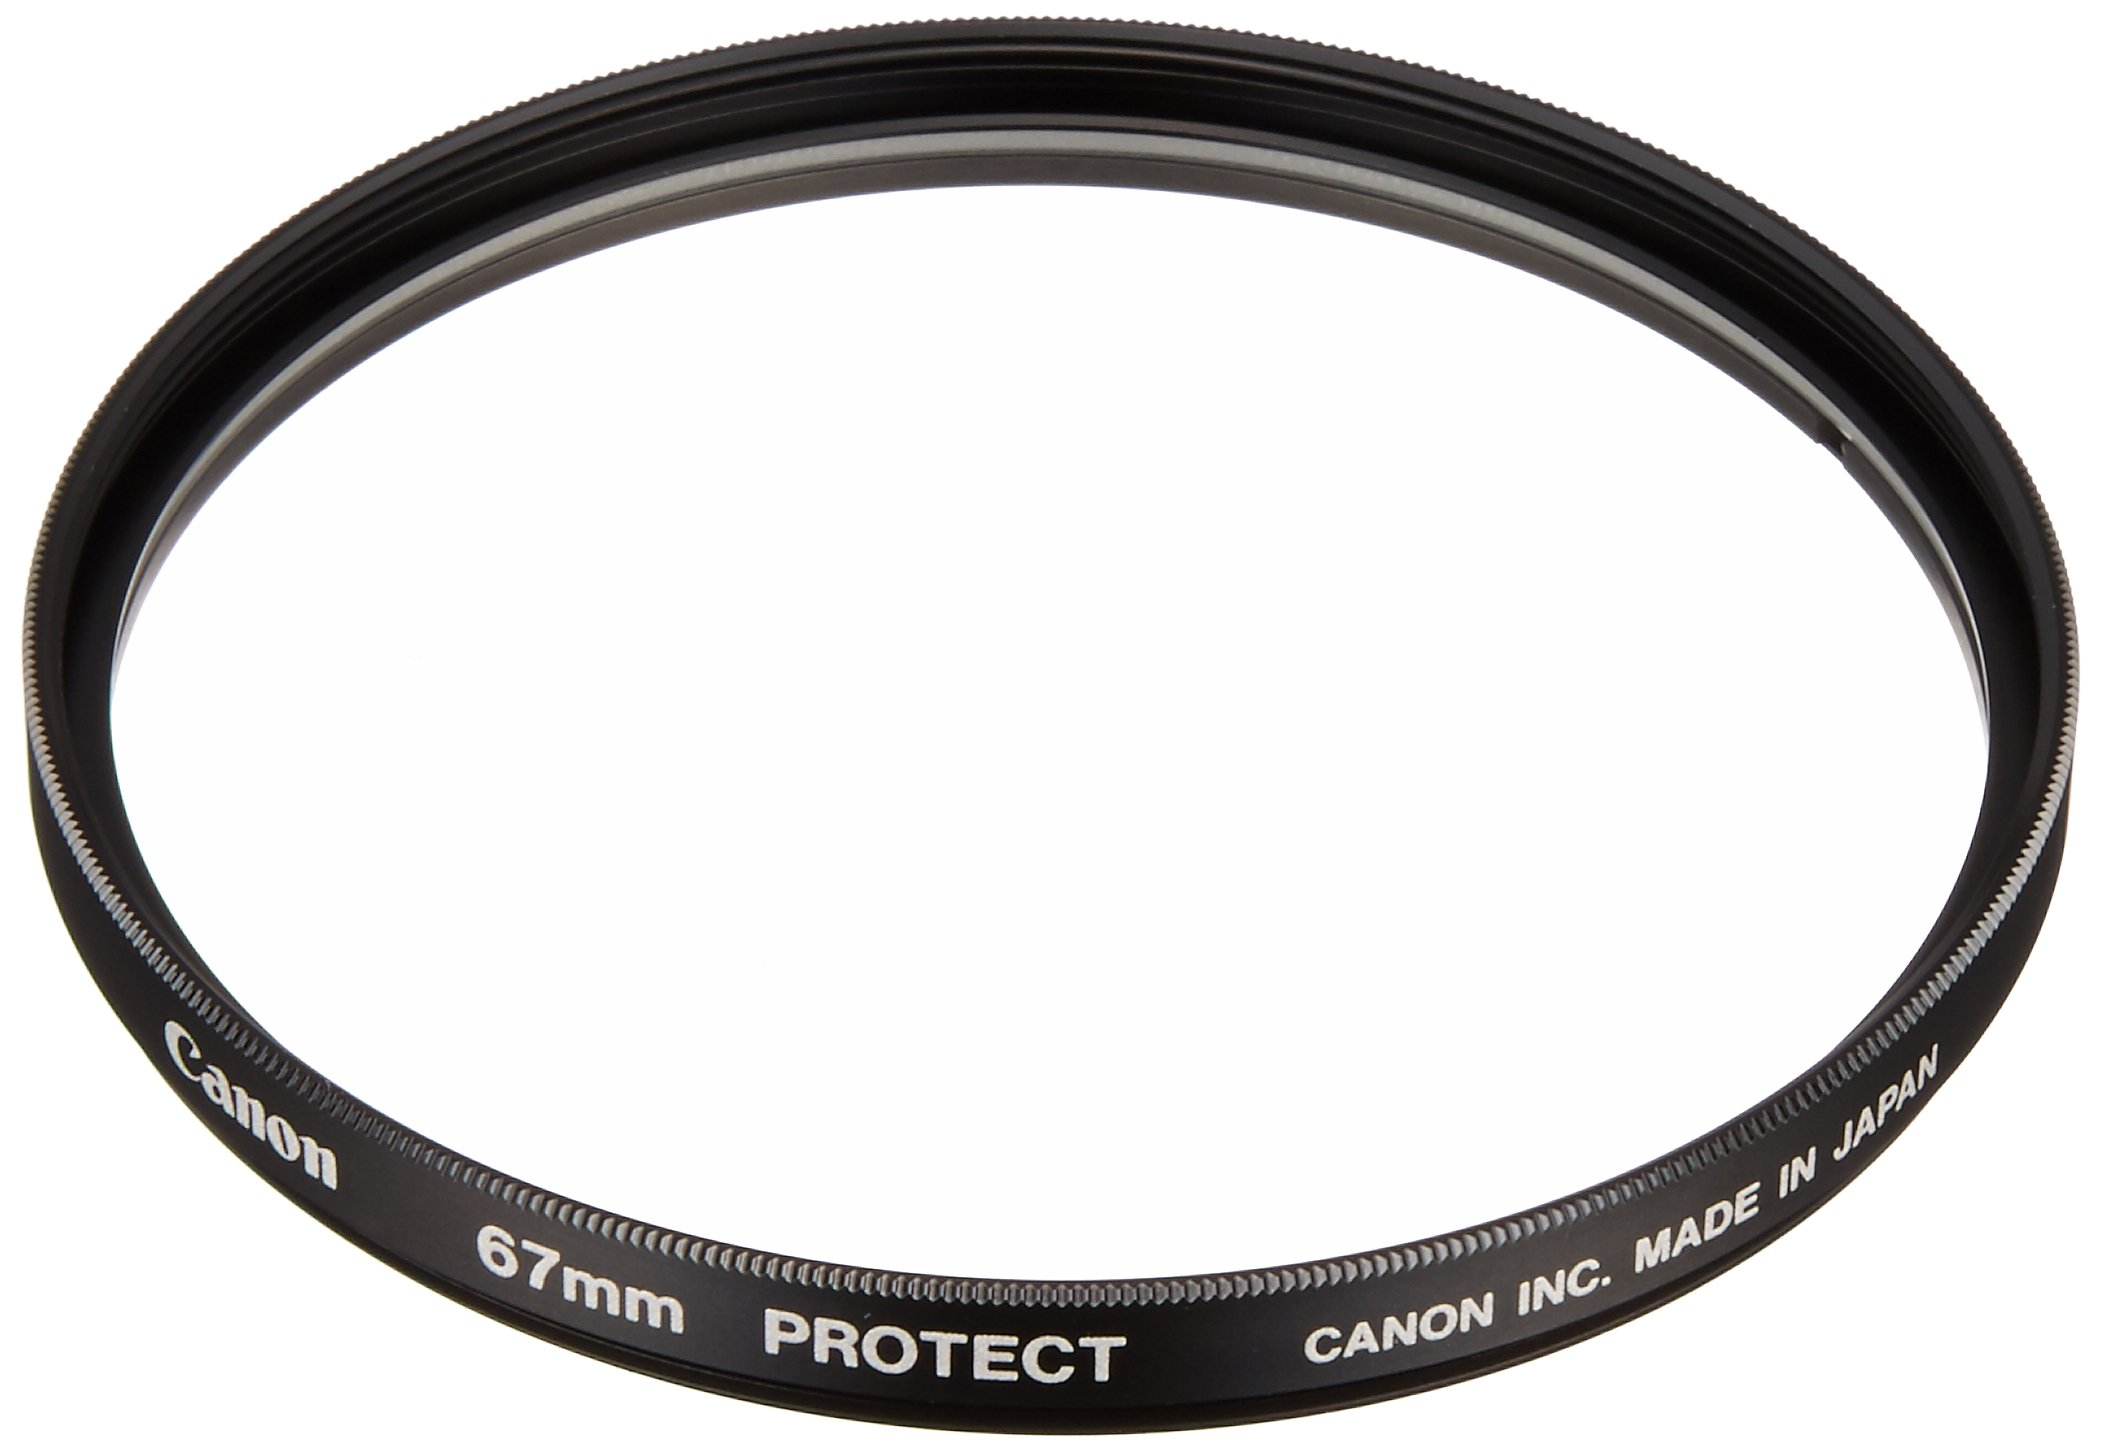 Canon Cameras US 2598A001 67mm Protect Filter by Canon